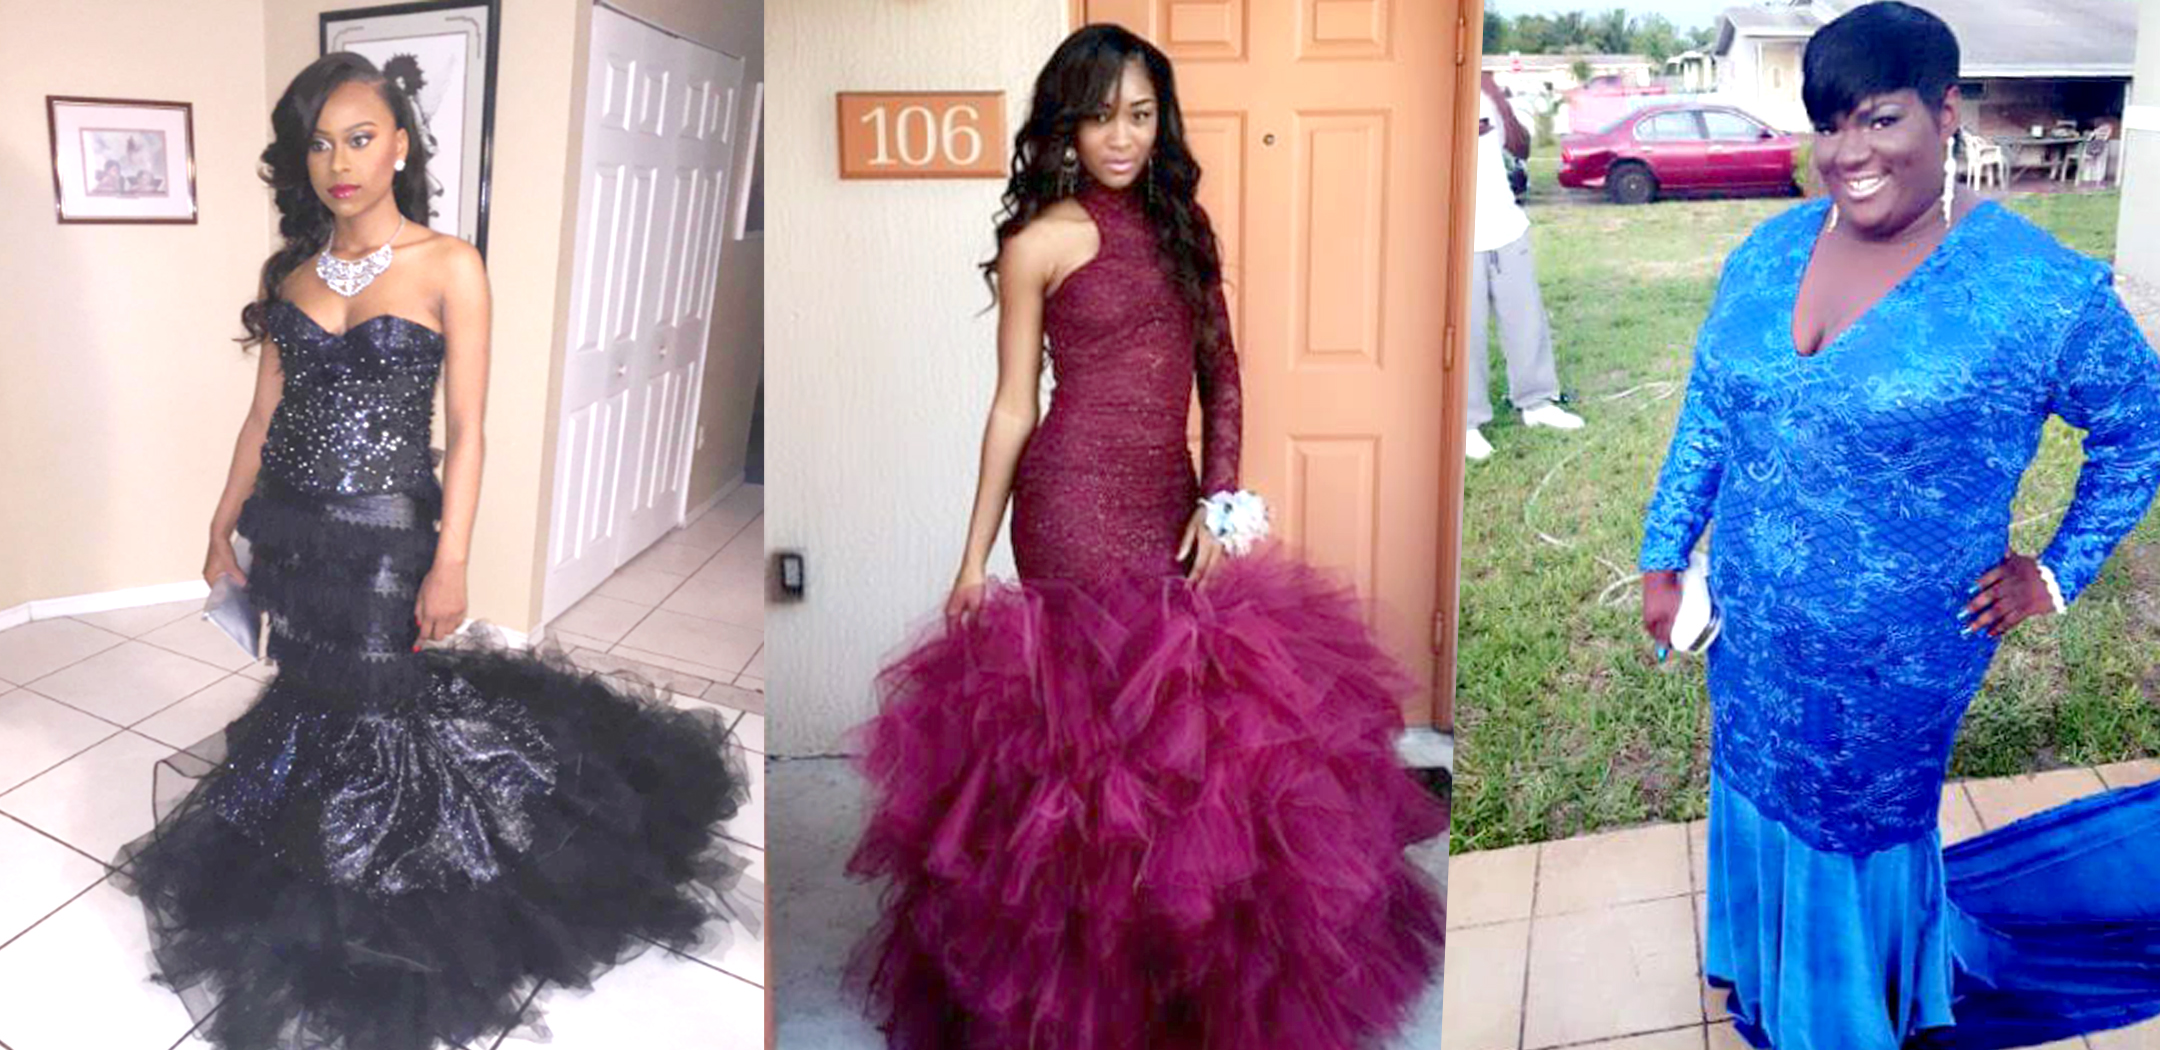 Miami Designer Creates Custom-Order Prom Gowns | WLRN